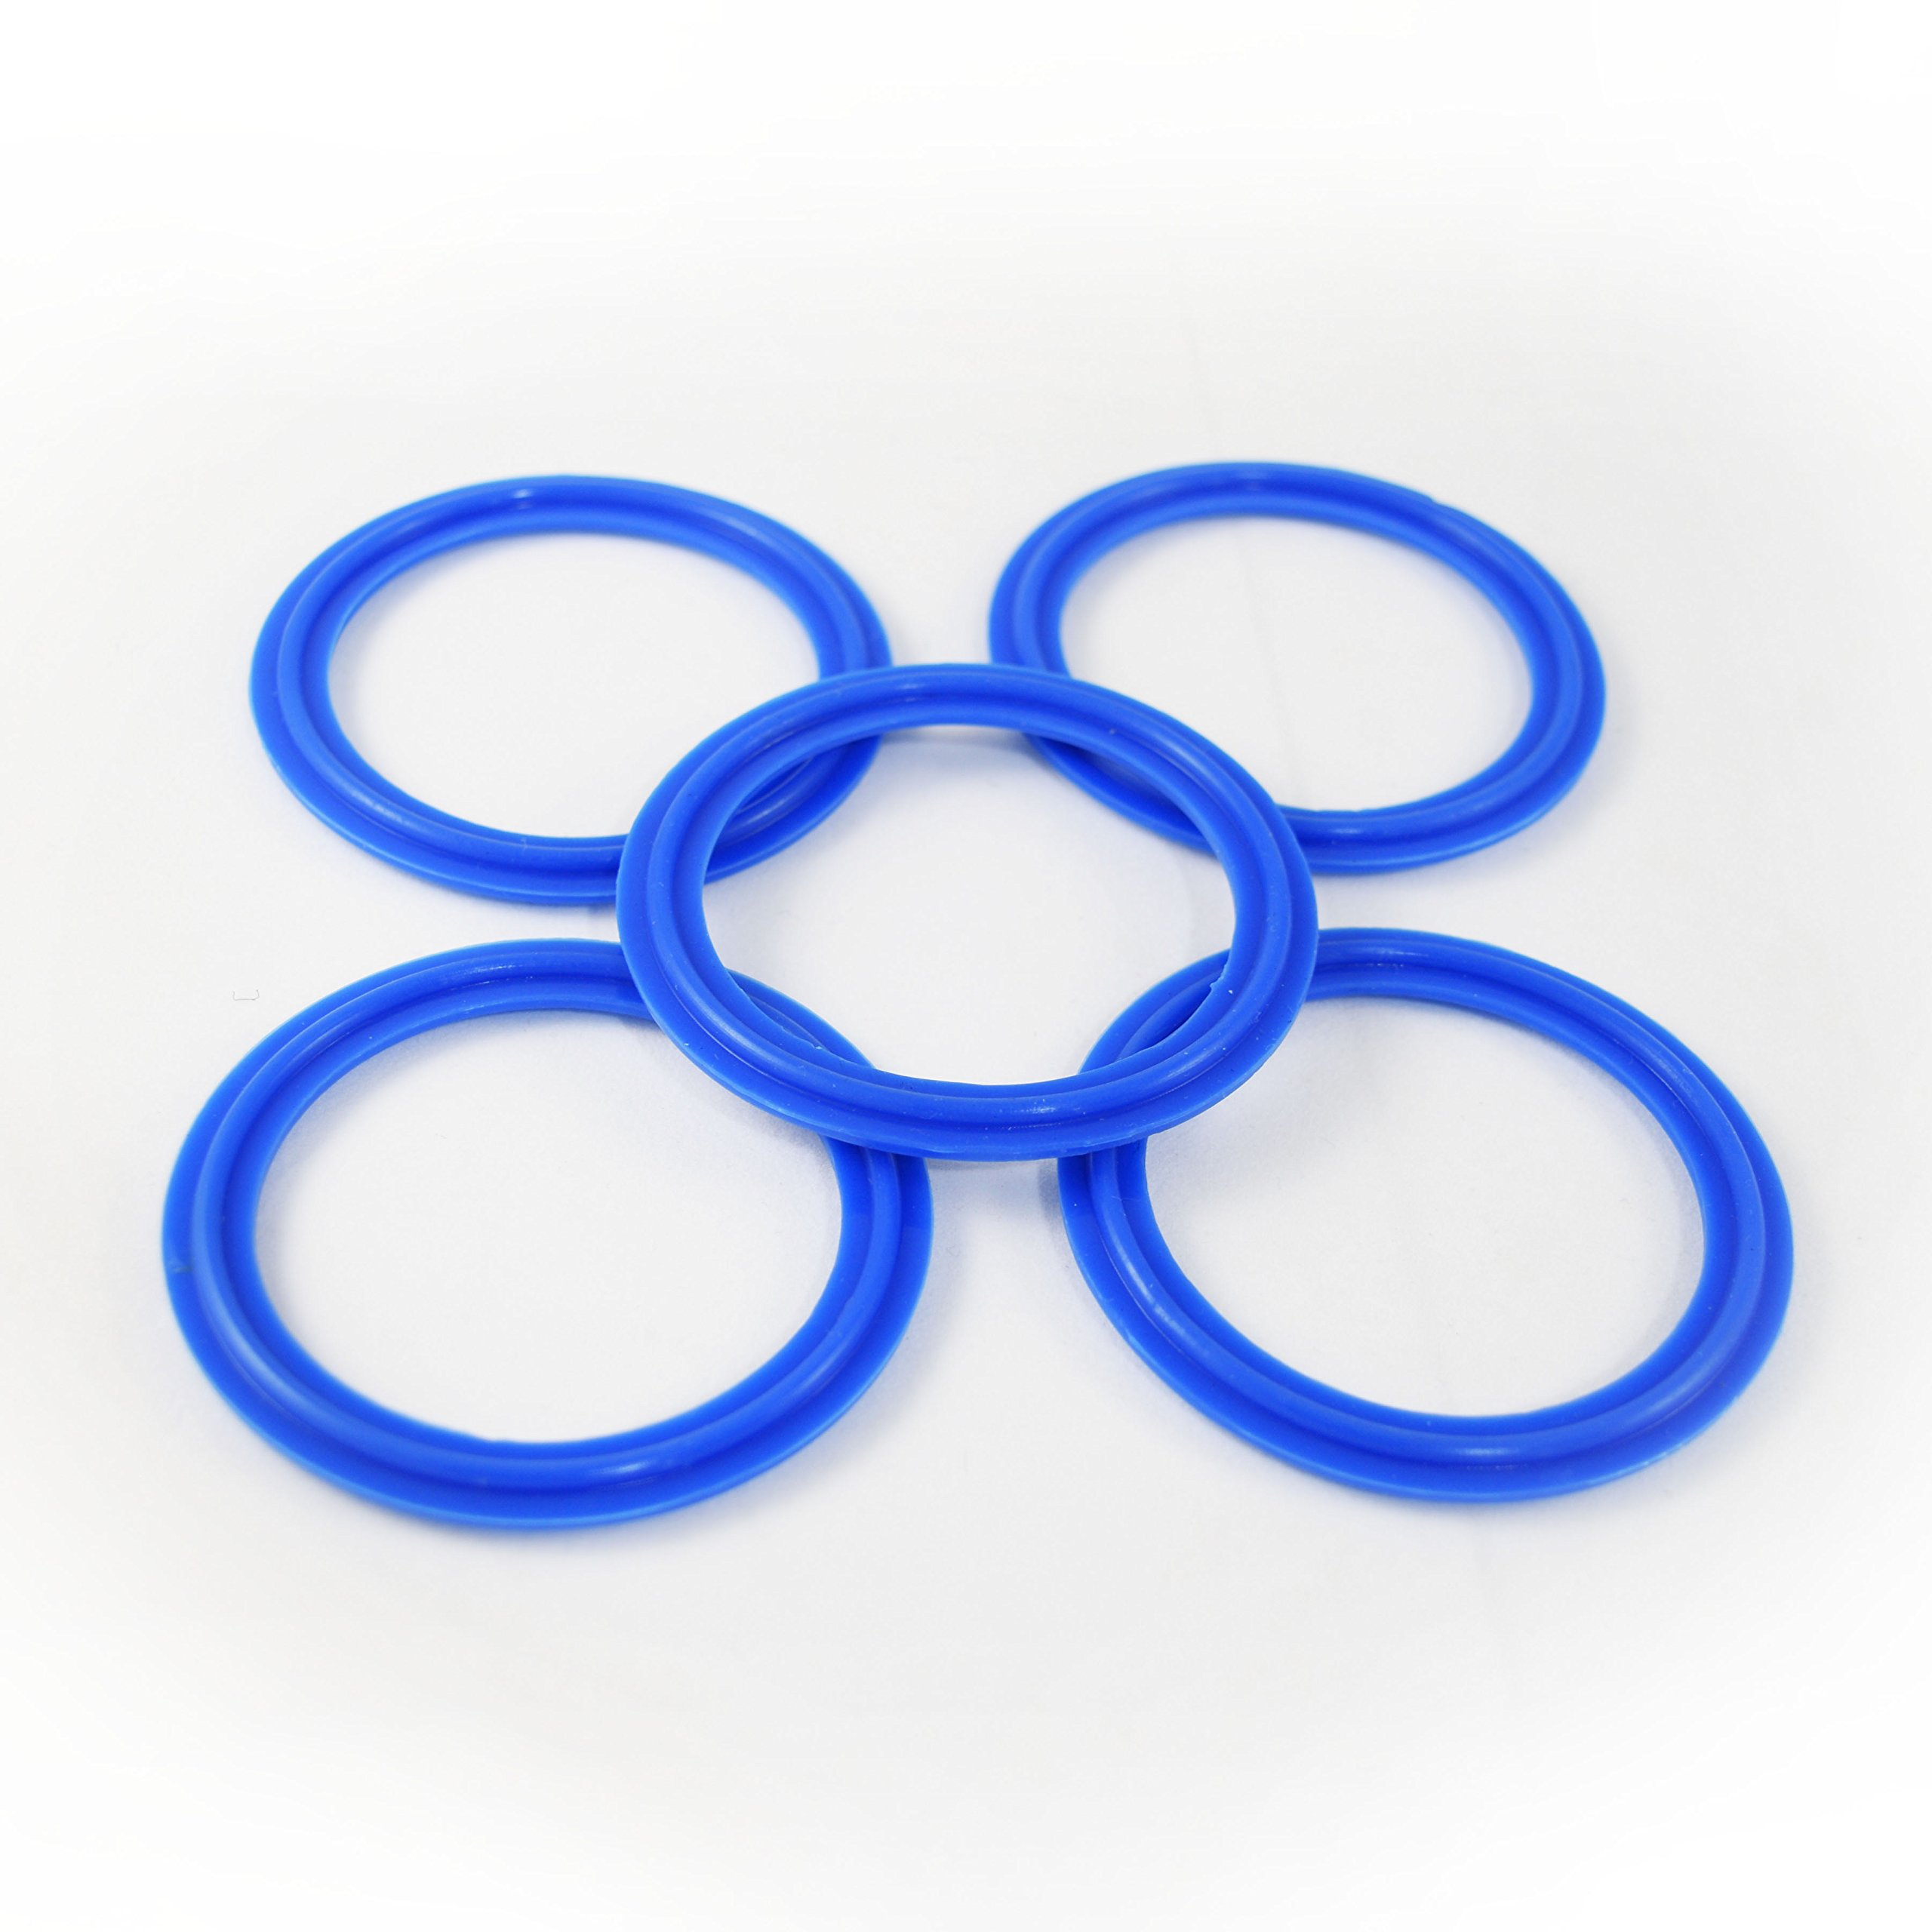 2'' Tri Clamp Artesian Silicone Gasket (Blue) Package of (5) Pharmaceutical & Food Grade Highly Identifiable! FDA Certified & Material Tested by ARTESIAN SYSTEMS